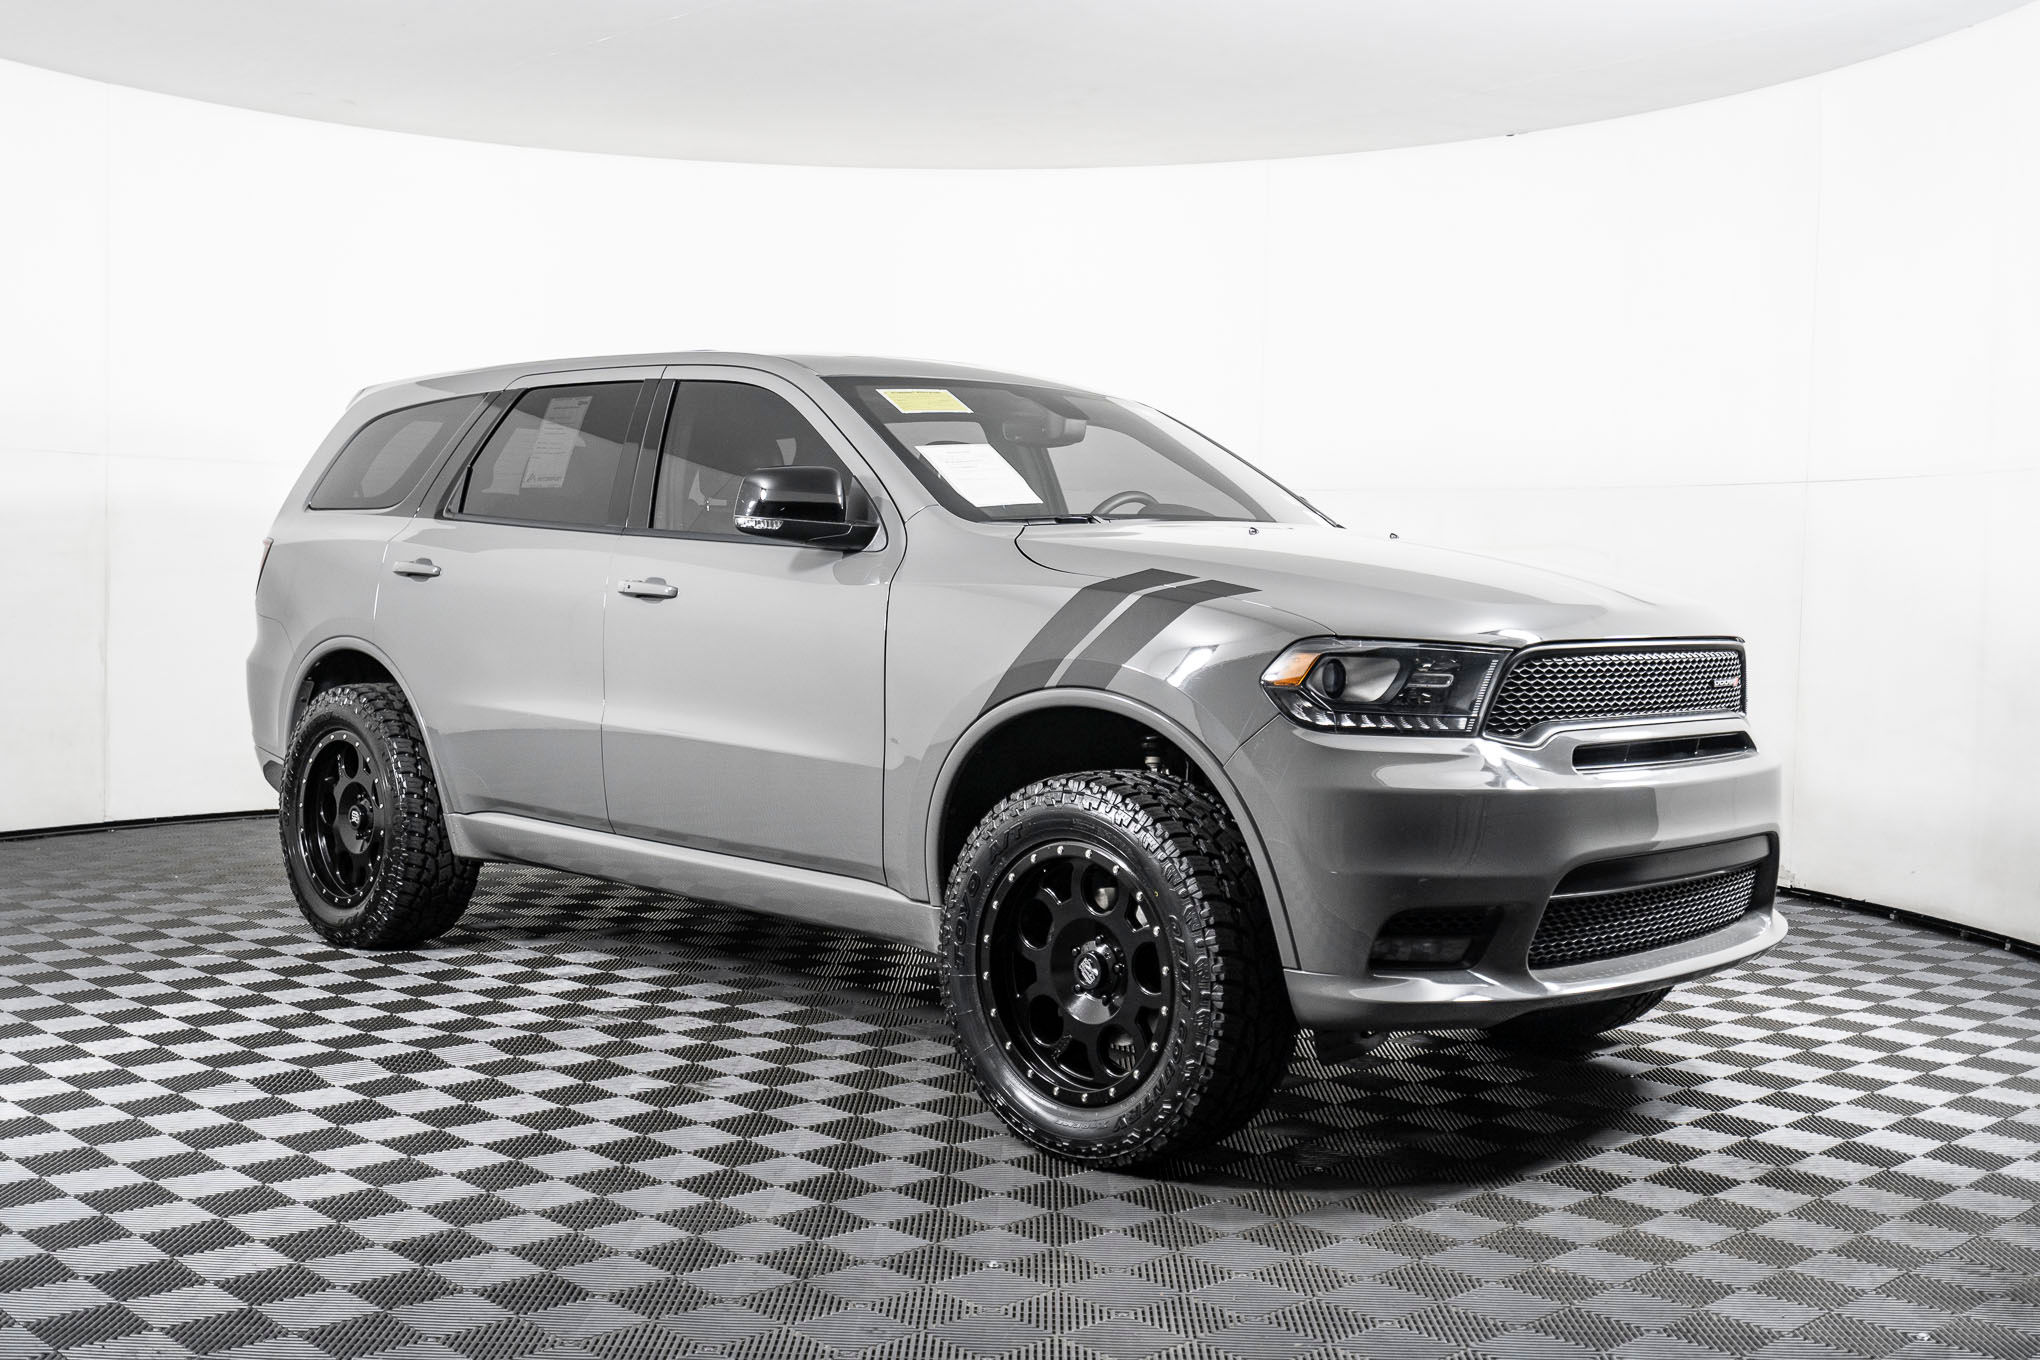 Used Lifted 2019 Dodge Durango Gt Awd Suv For Sale Northwest Motorsport